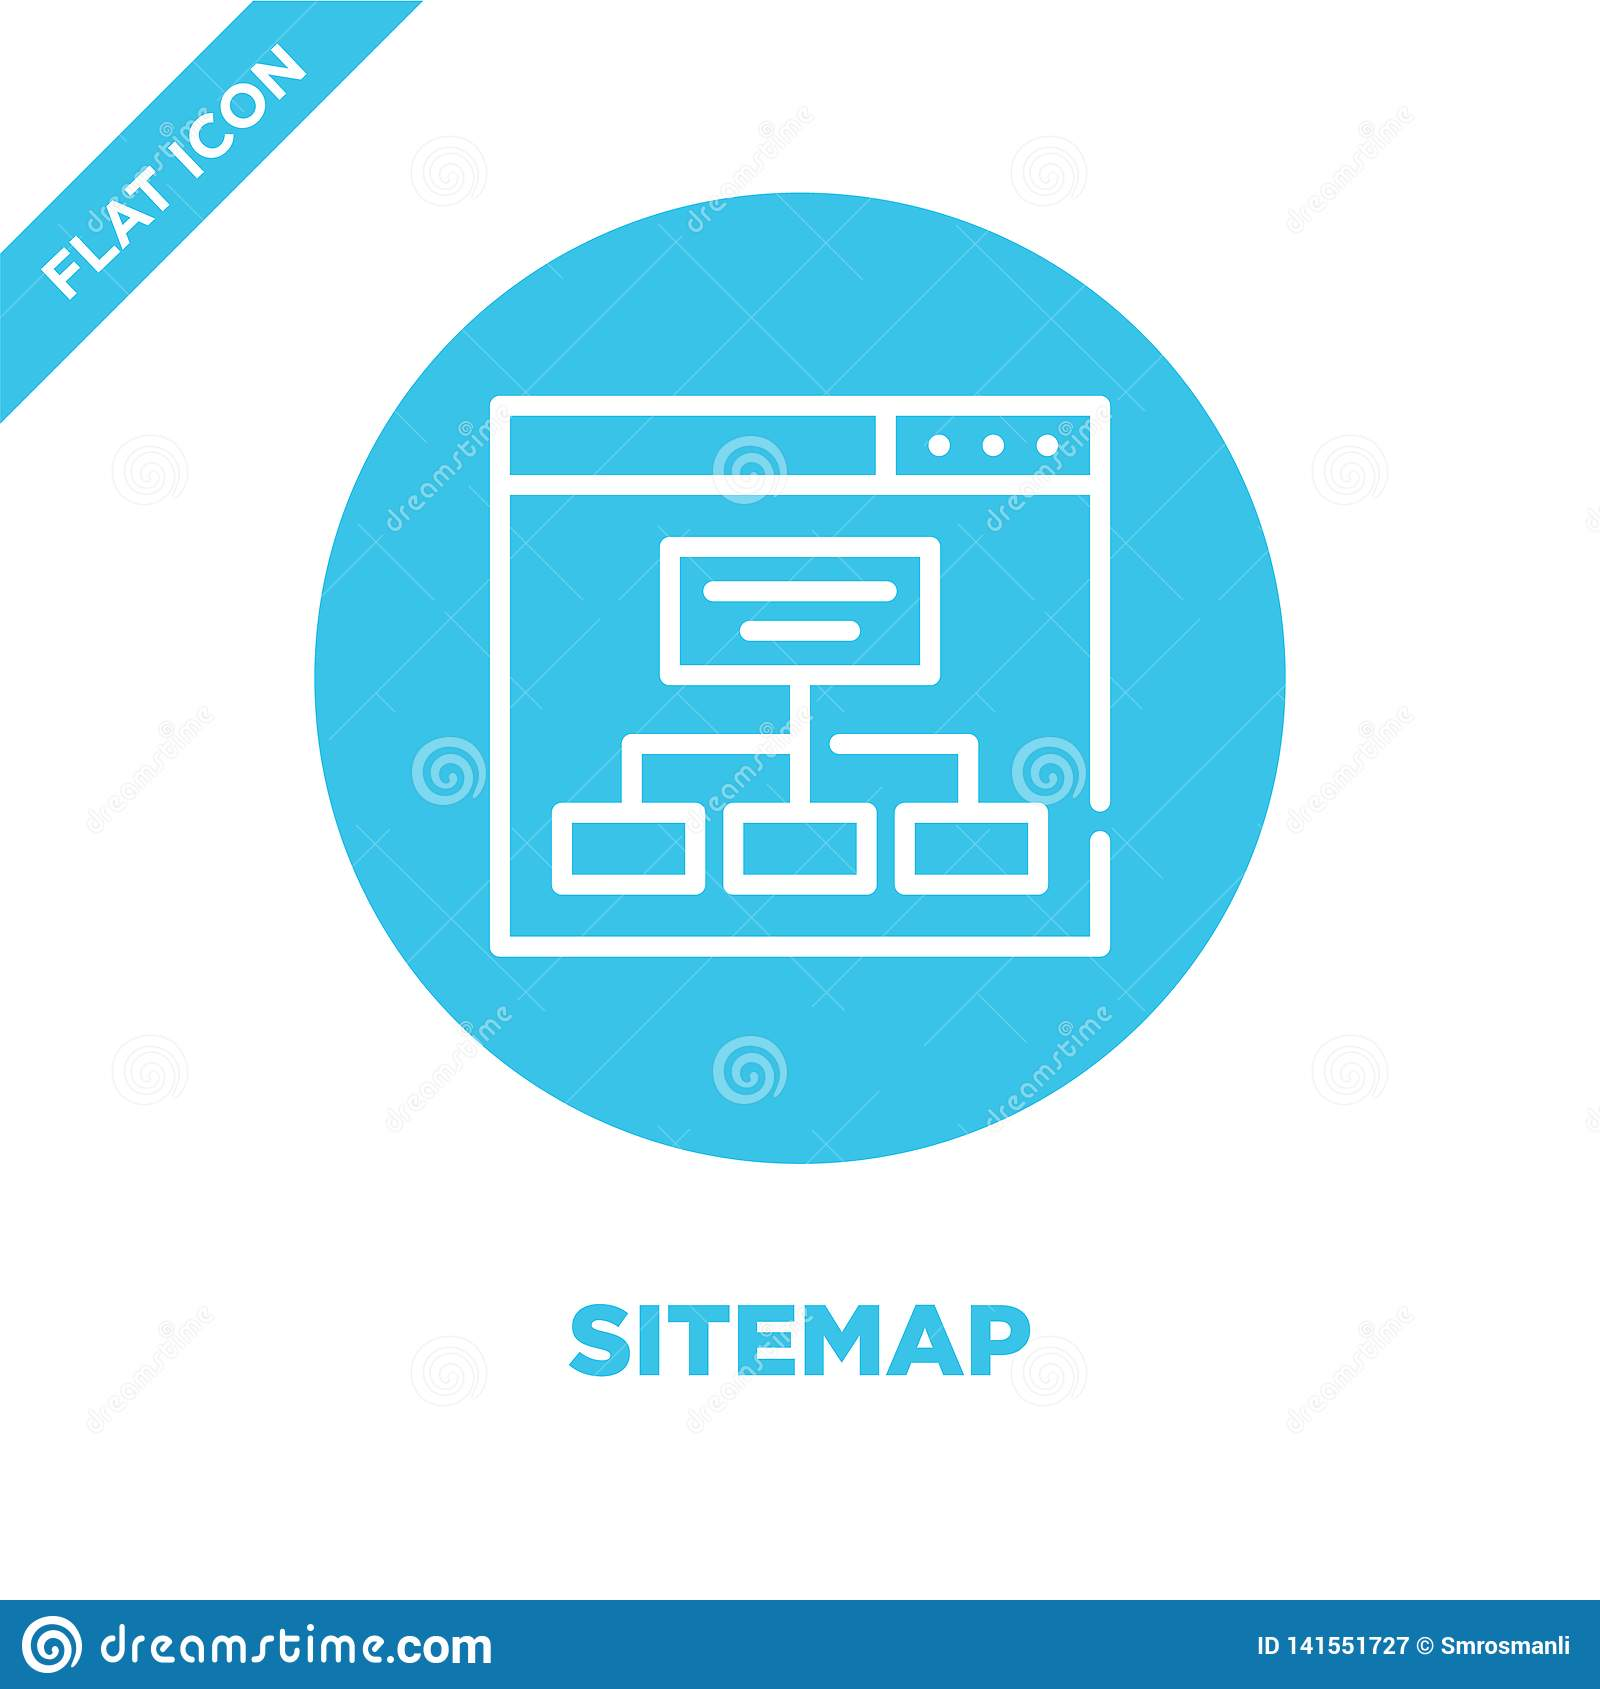 sitemap icon vector. Thin line sitemap outline icon vector illustration.sitemap symbol for use on web and mobile apps, logo, print